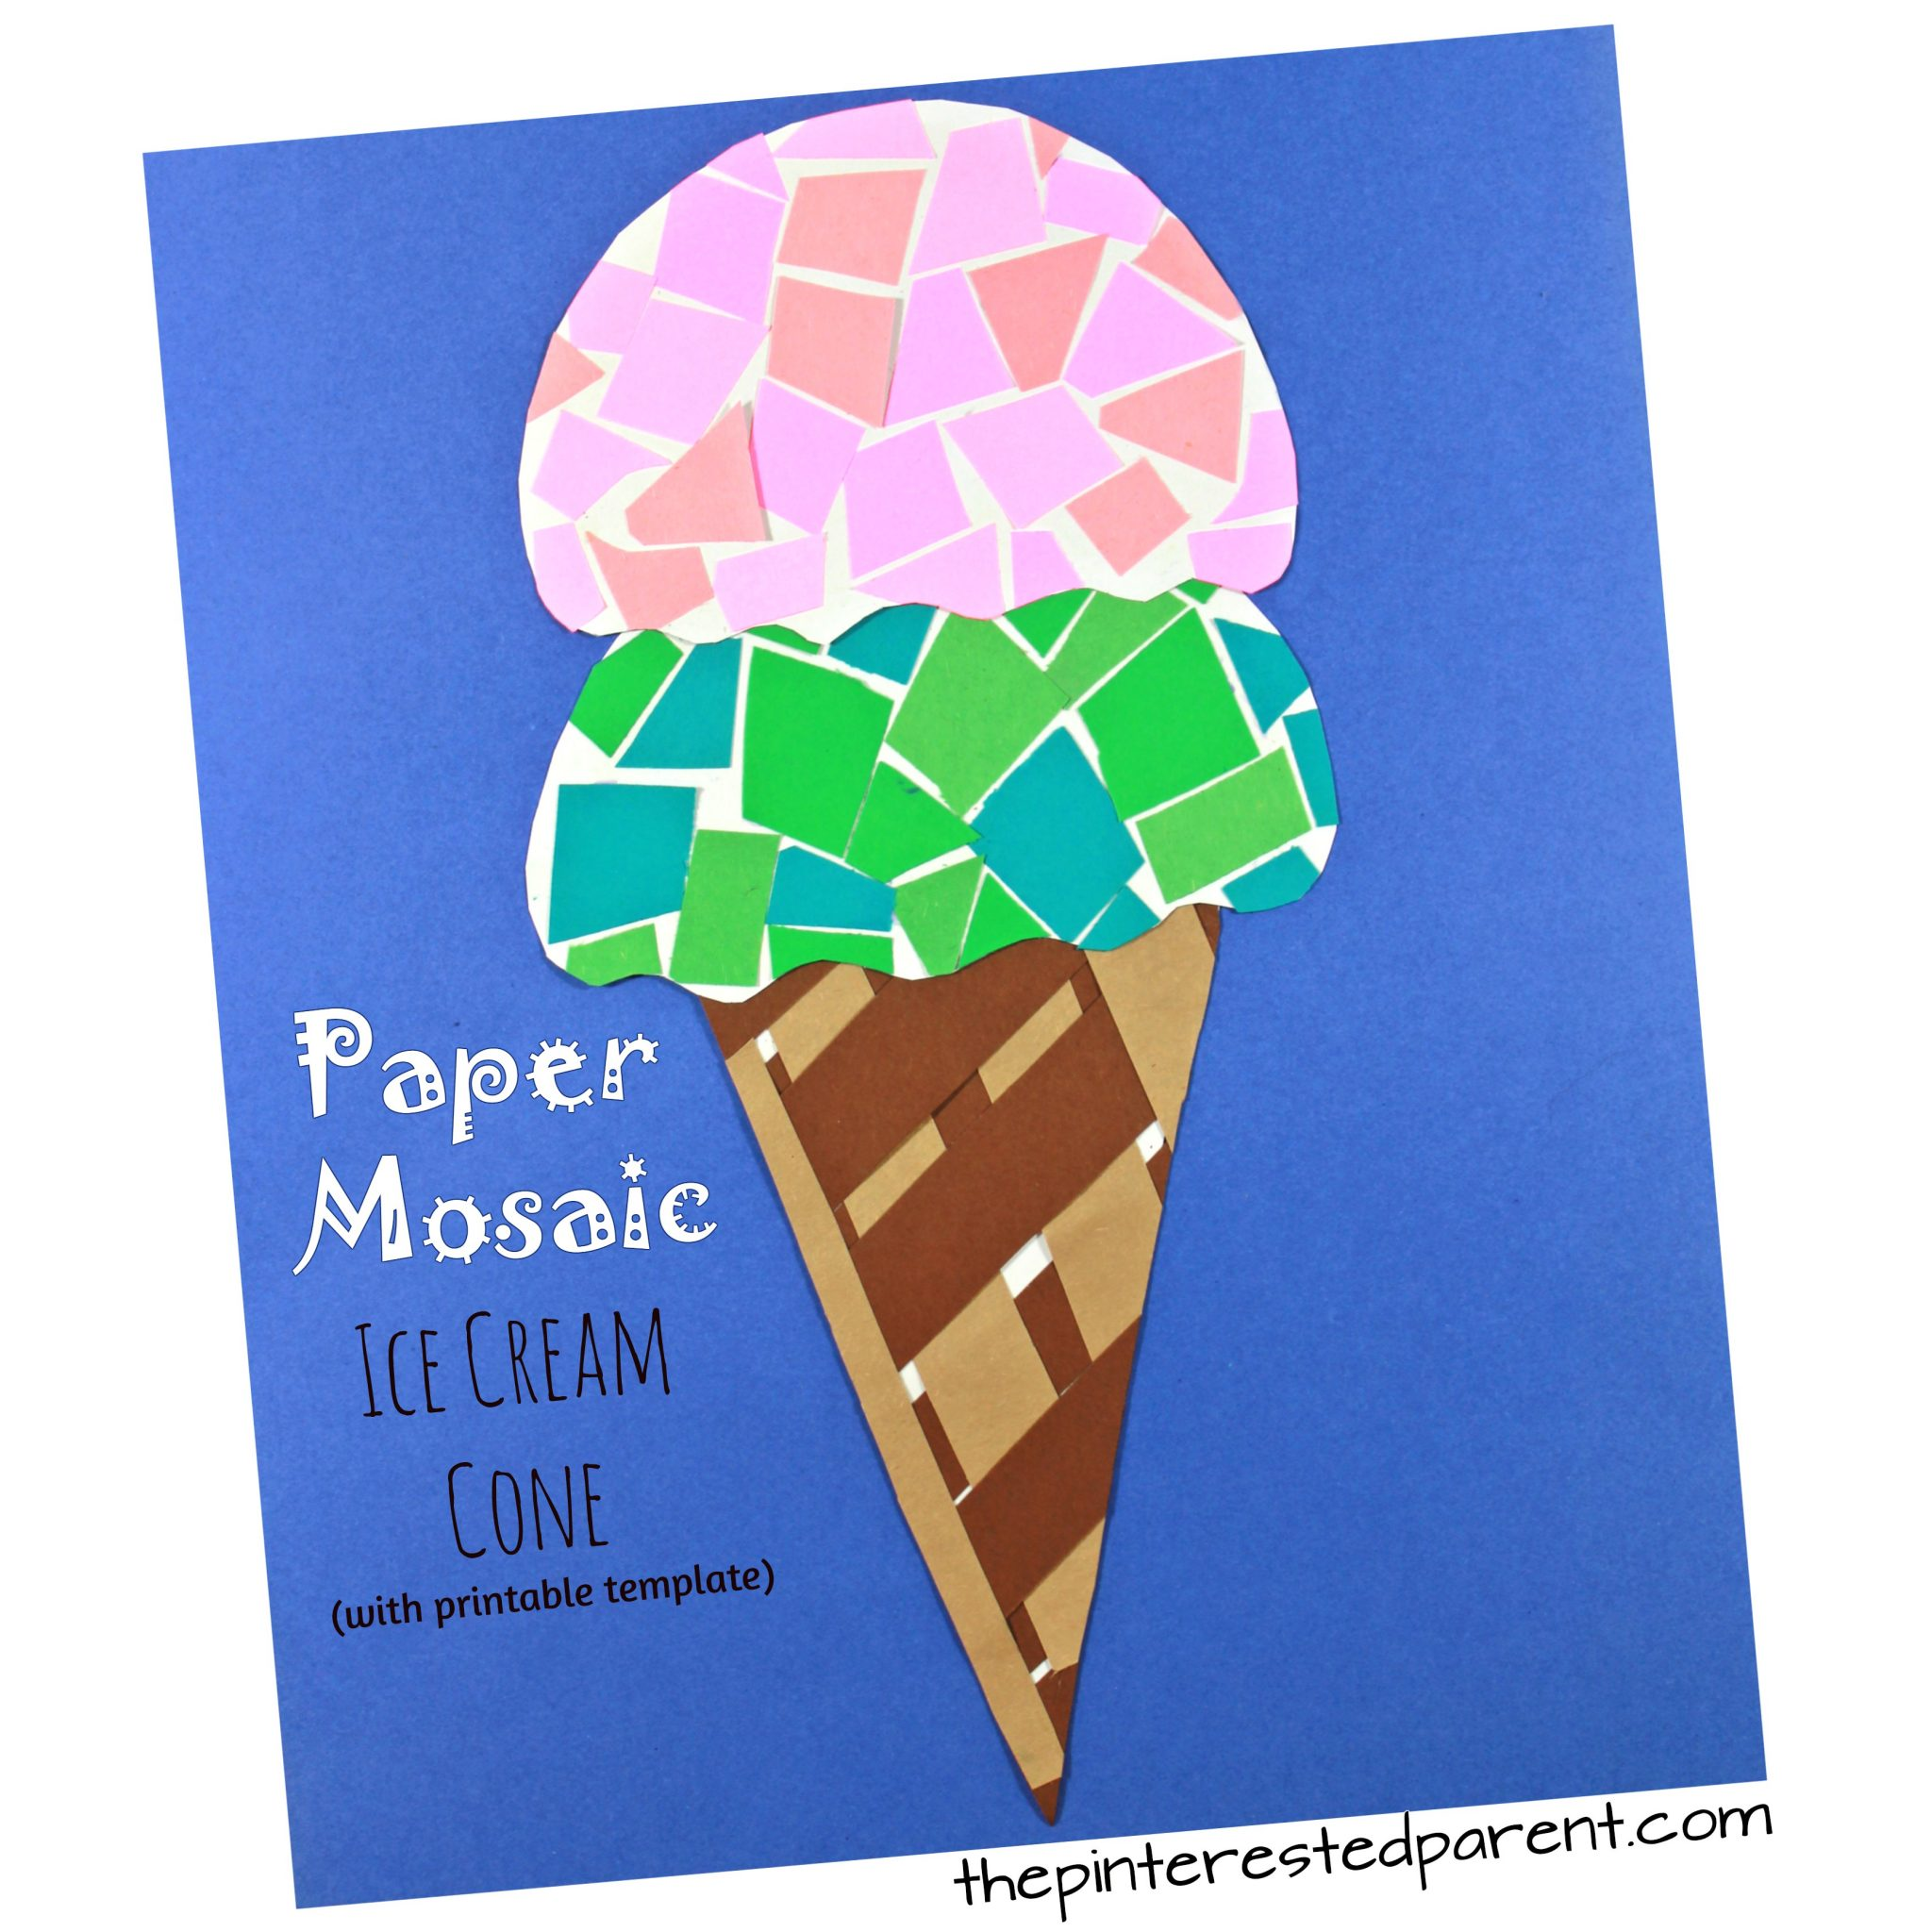 photograph about Ice Cream Template Printable named Printable Paper Mosaic Ice Product Cone The Pinterested Dad or mum